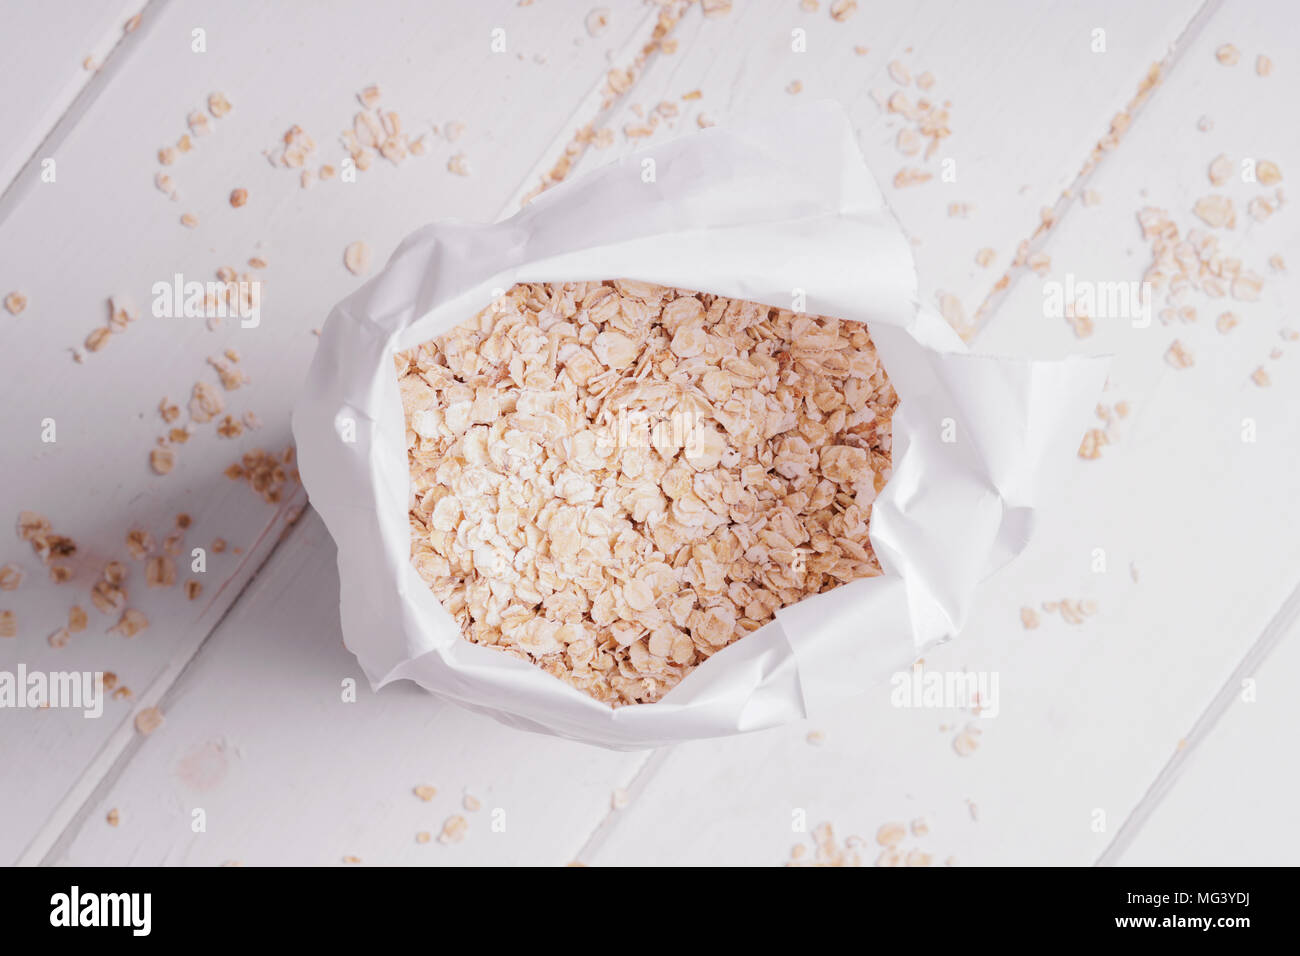 overhead view of bag of rolled oats oatmeal oat flakes on rustic white wooden table - Stock Image